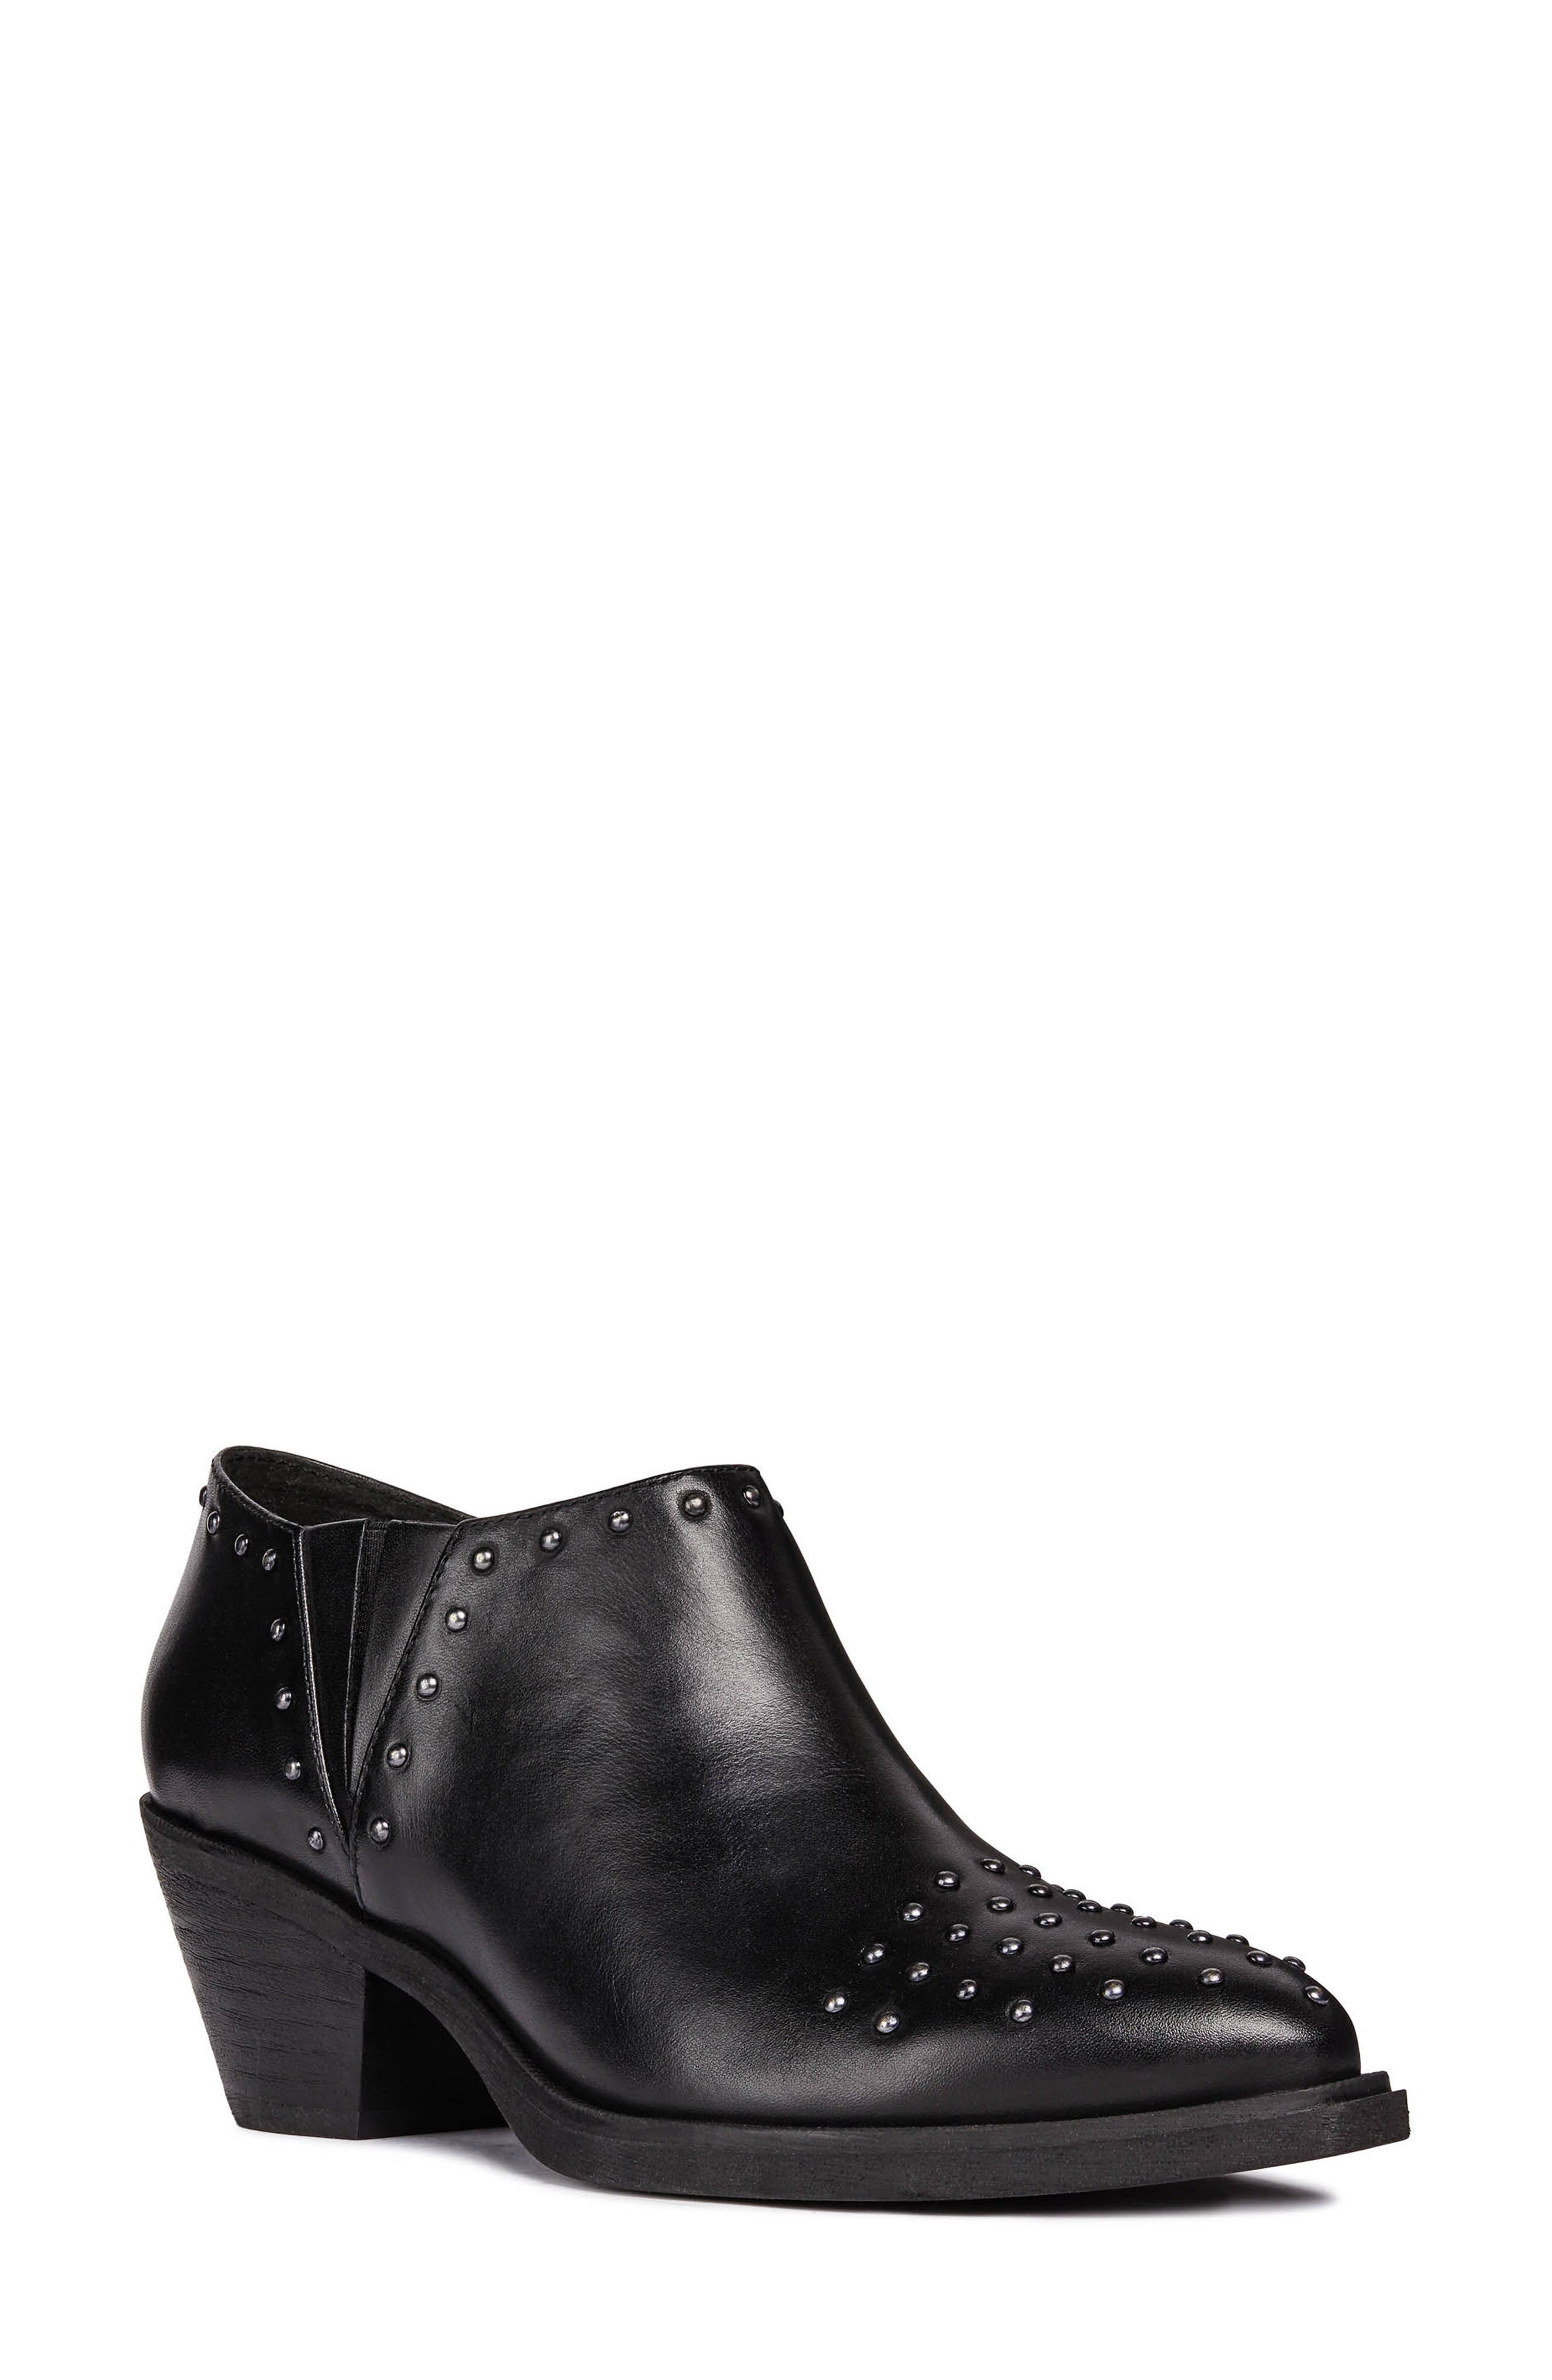 GEOX, Lovai Ankle Boot, Main thumbnail 1, color, BLACK LEATHER